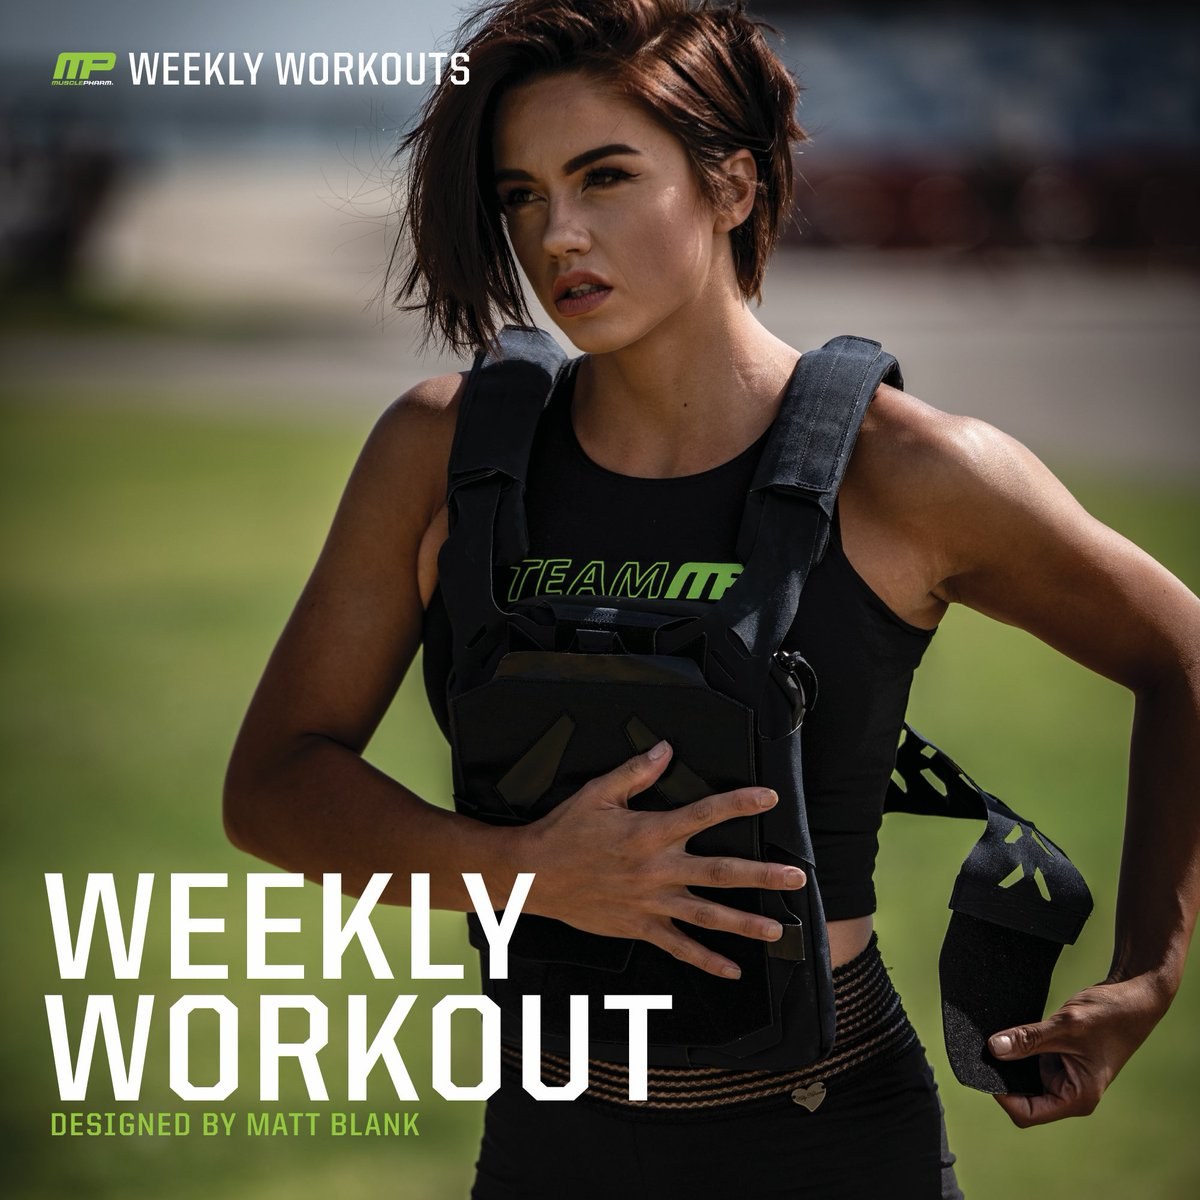 The MusclePharm Weekly Workout is posted to FB and IG! Happy Farther's Day to all the great dads out there, especially the MusclePharm dads! #WeLiveThis https://t.co/EdiMoE6JP9